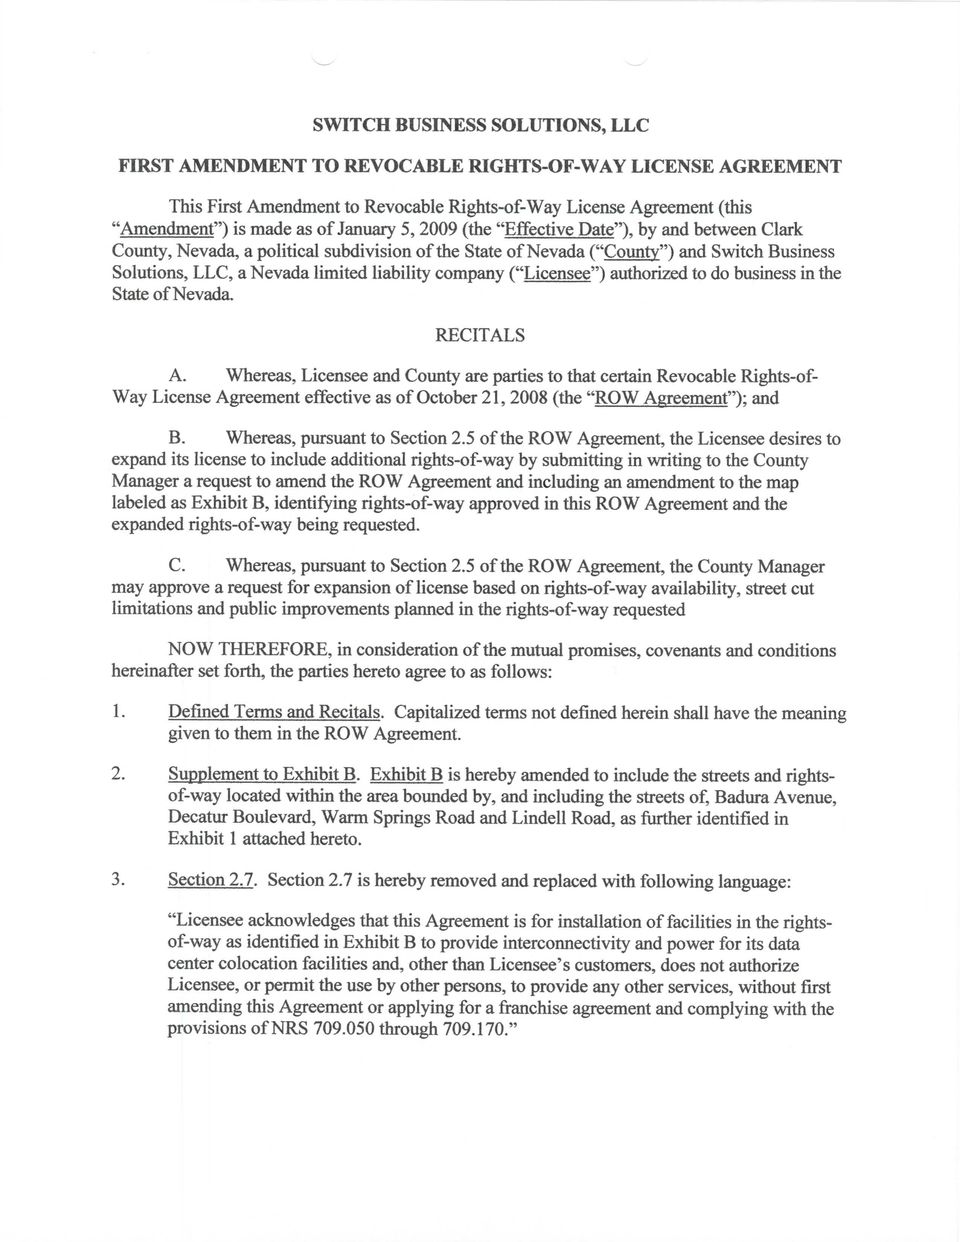 Switch Business Solutions Llc First Amendment To Revocable Rights